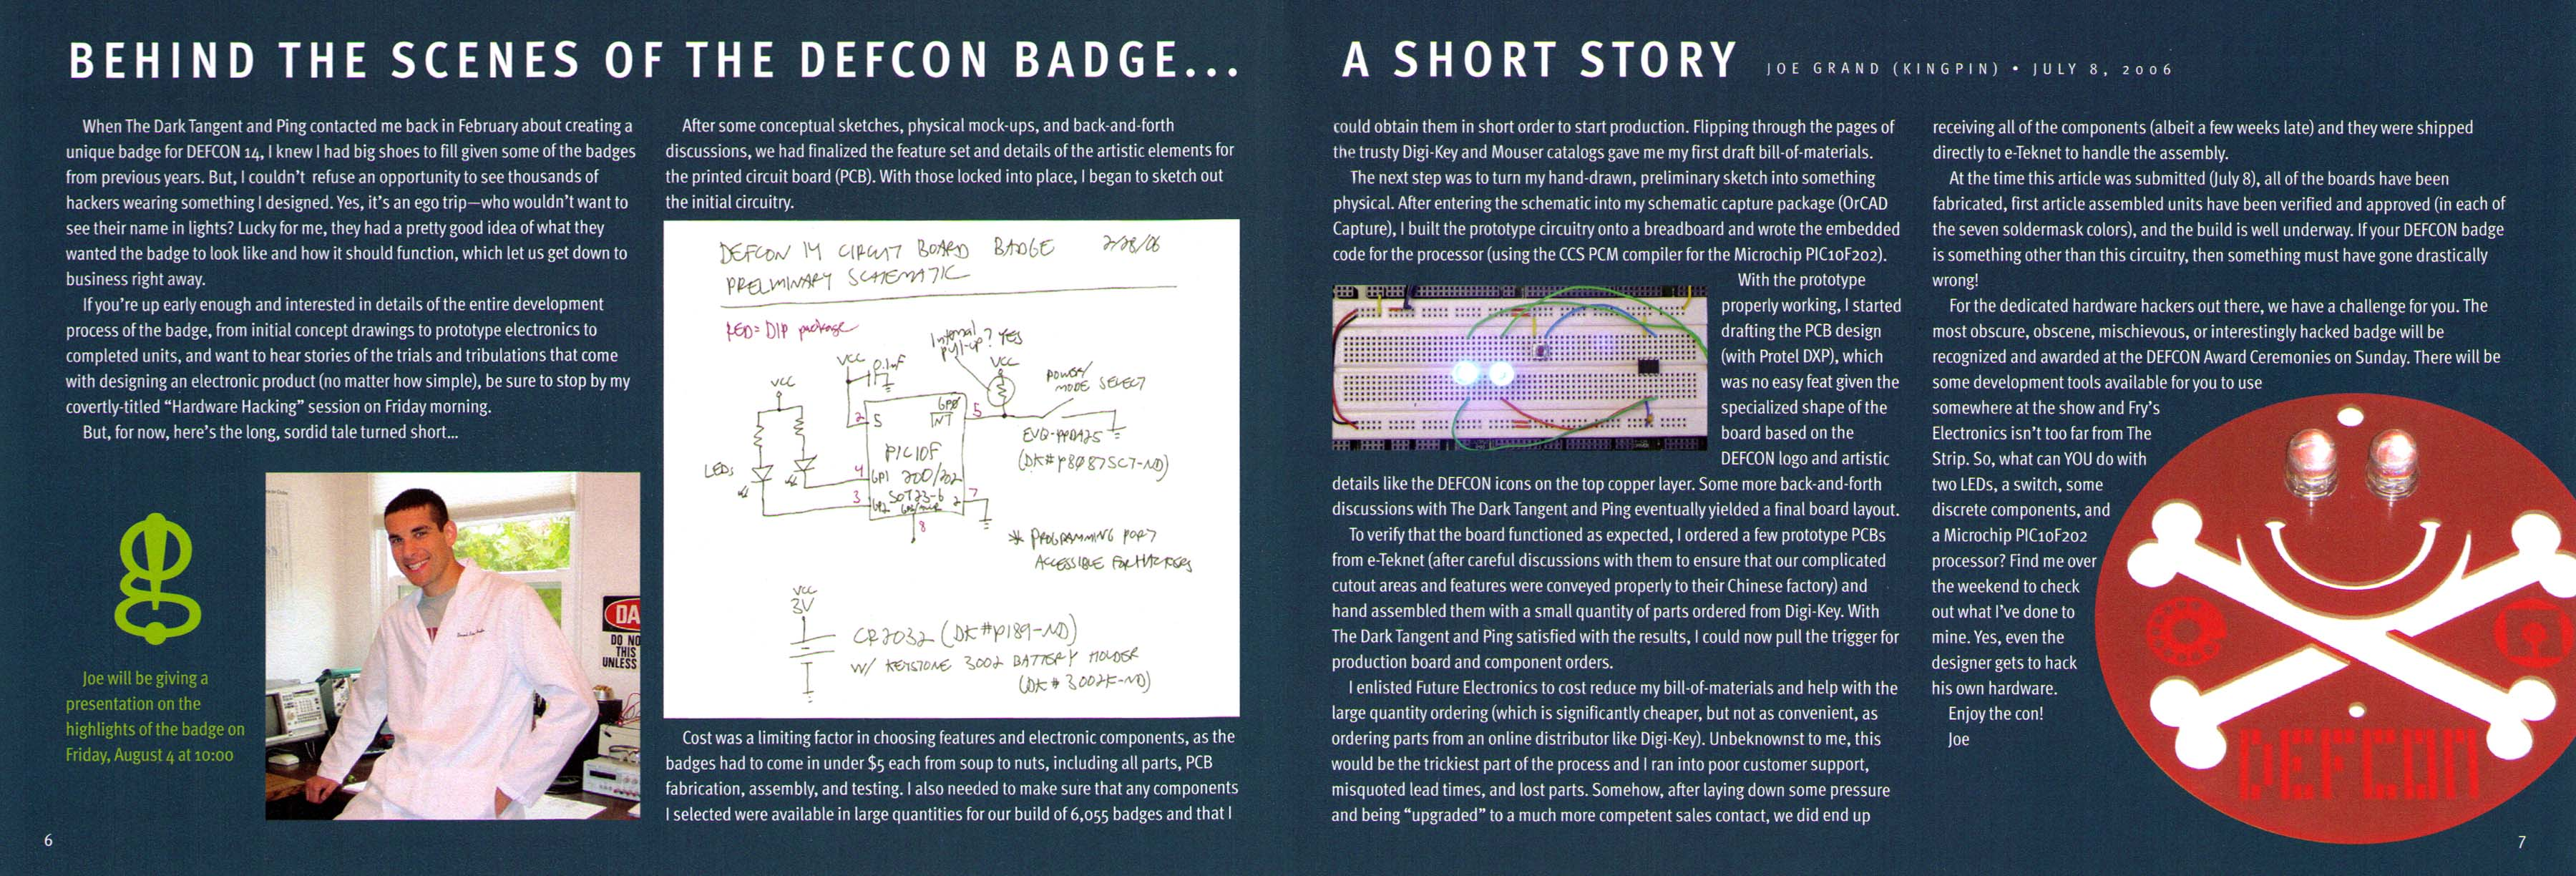 Defcon 14 Badge Grand Idea Studio My First Circuit Board Designed Prototyped Assembled By Flickr The Scenes Of